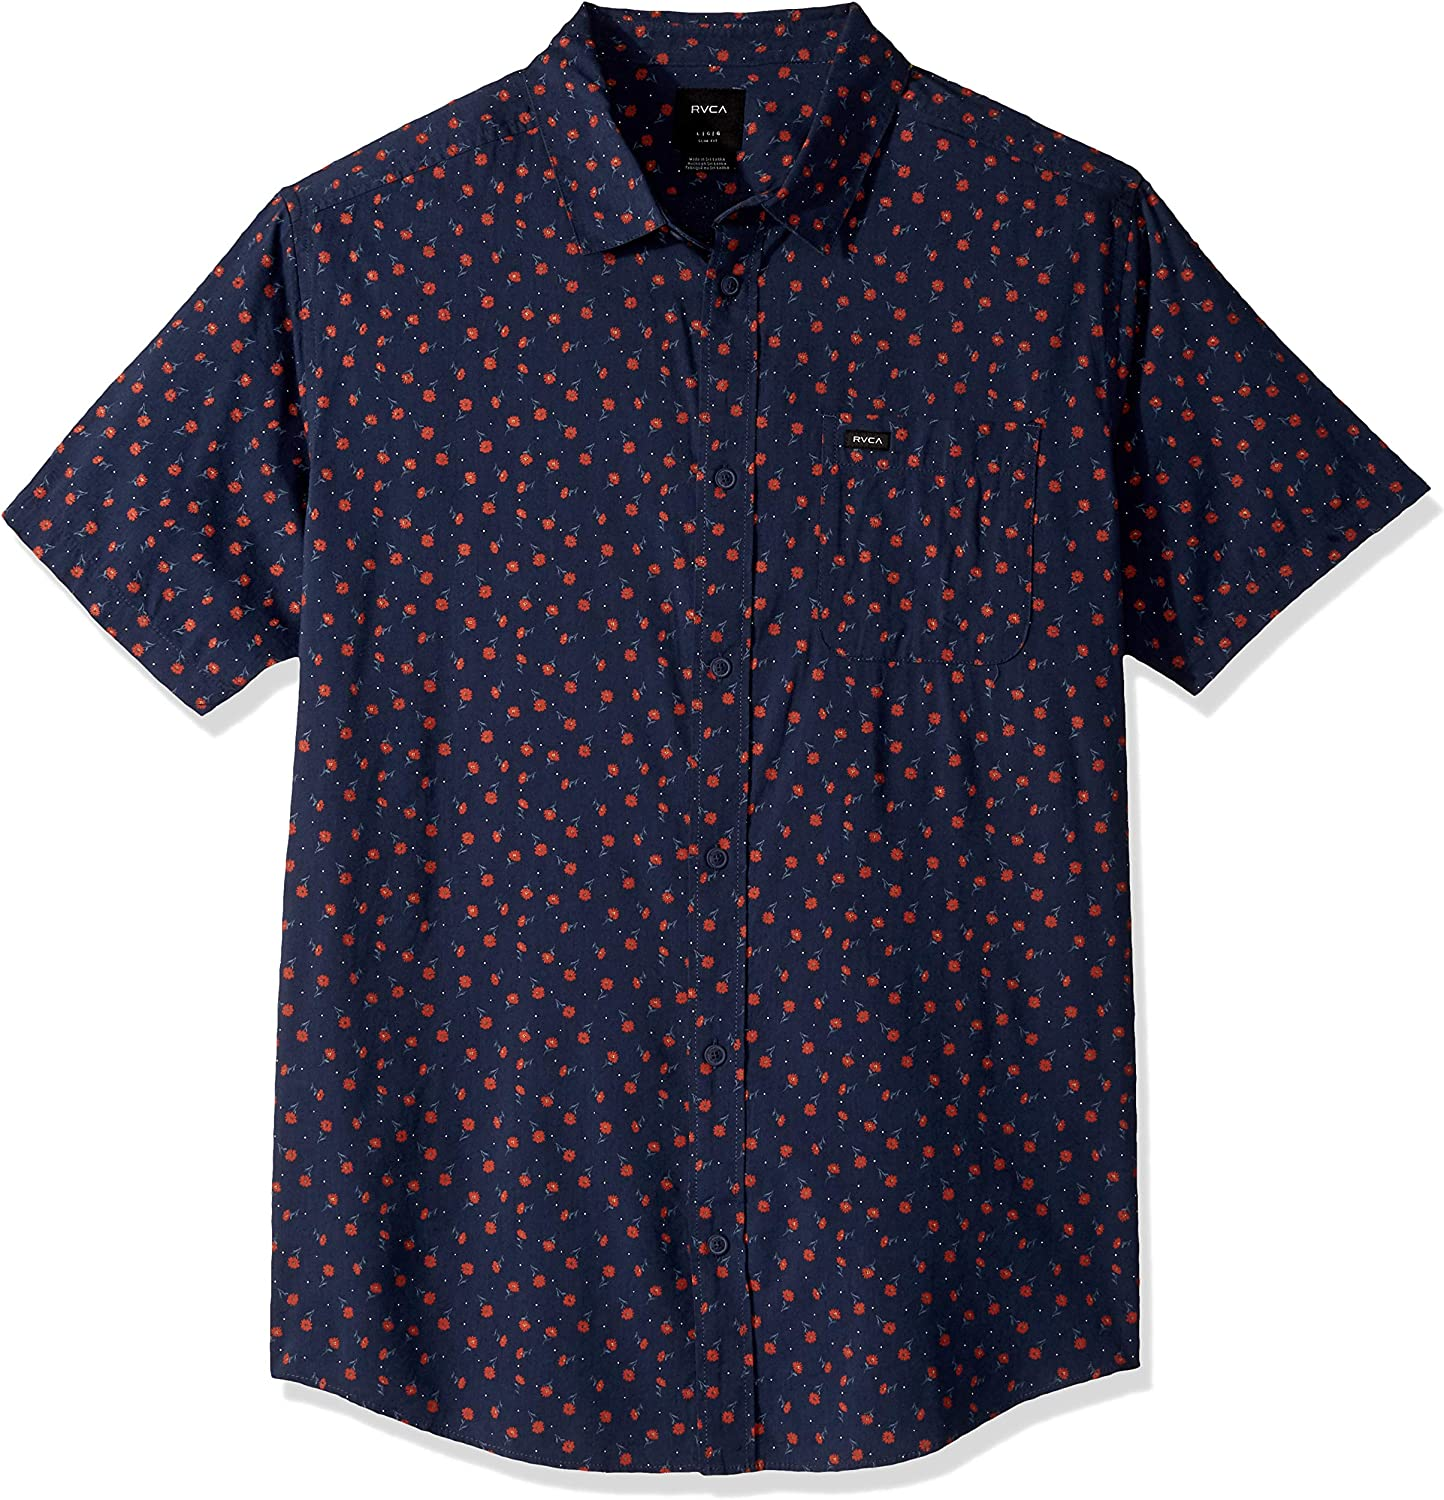 RVCA Men's Prelude Floral Button-Up Shirt